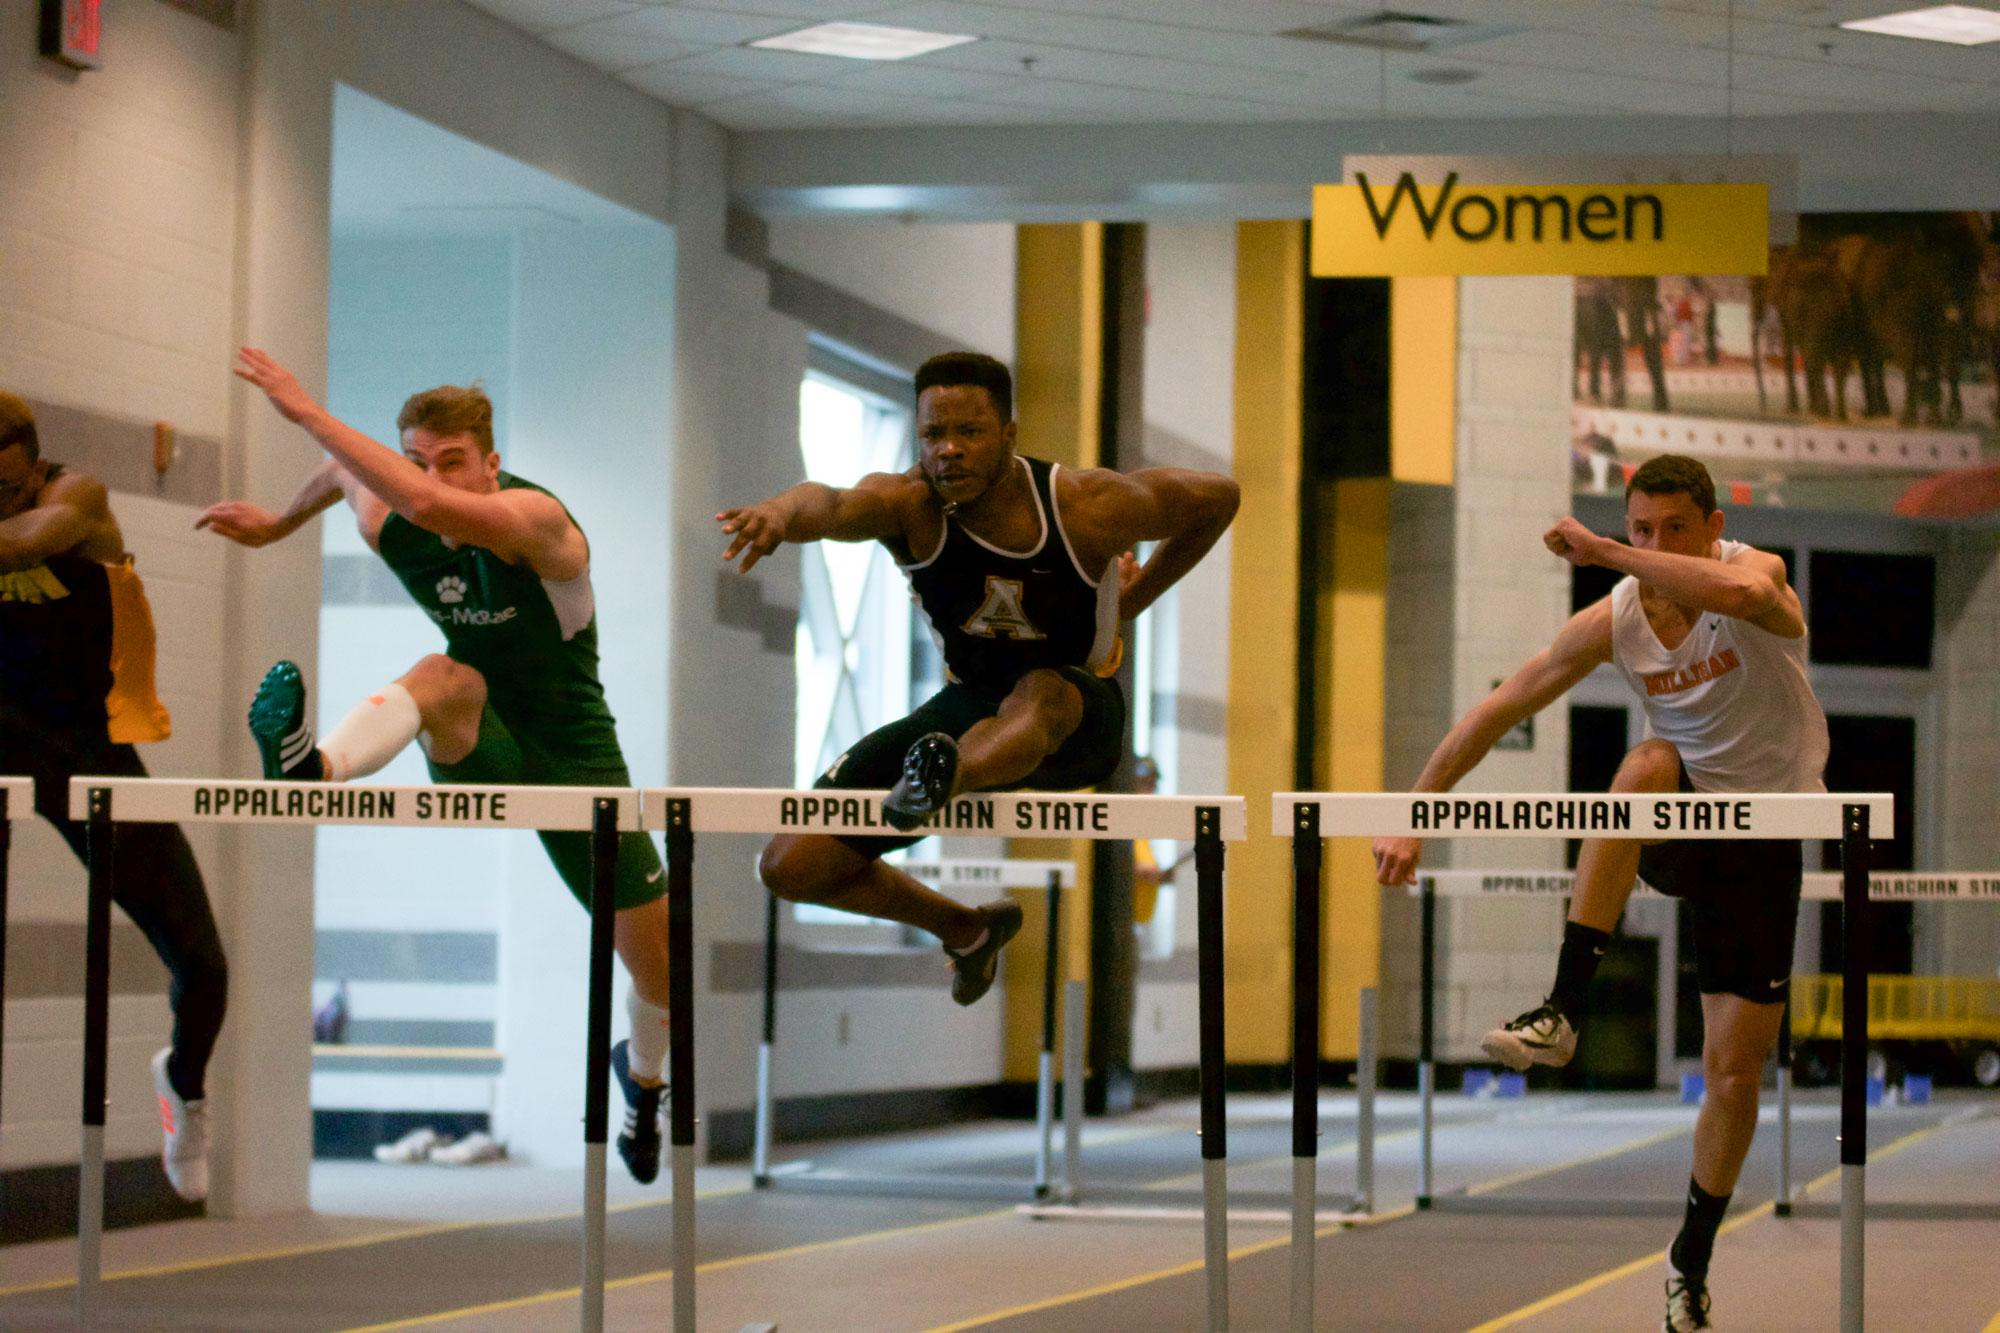 Led by veterans, men's track and field hoping to improve